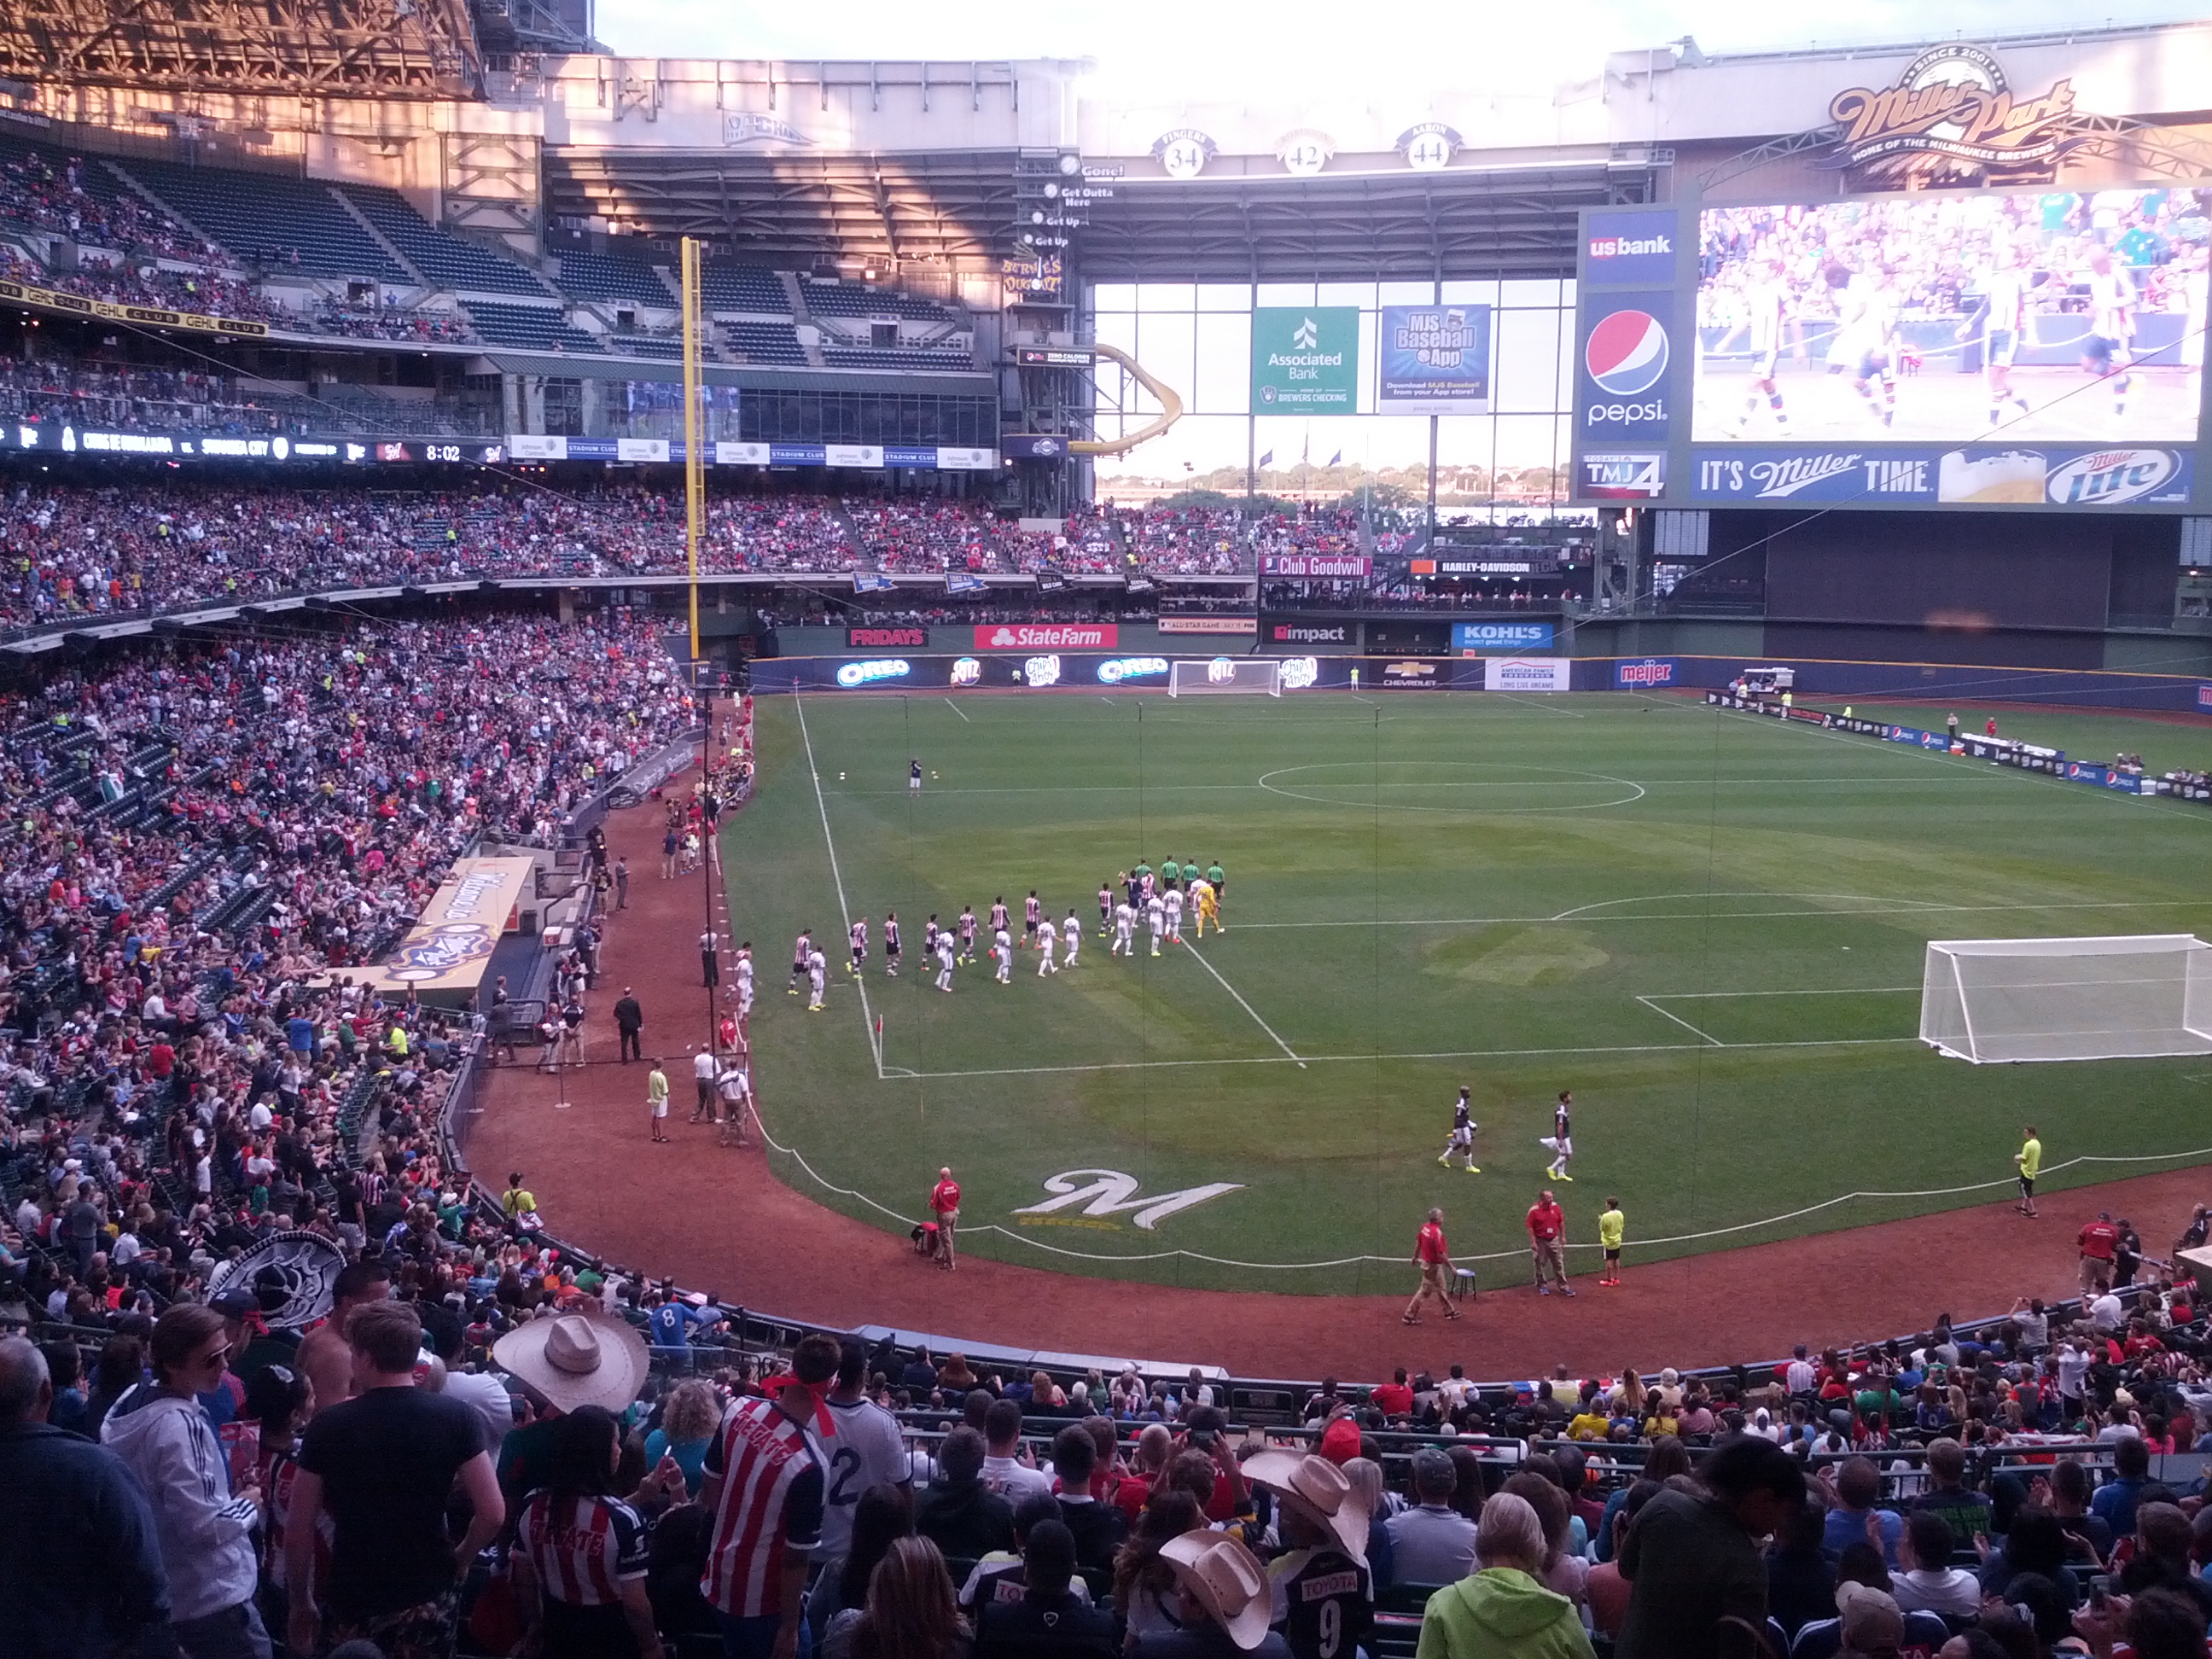 Chivas and Swansea City players take the field for the first soccer game at Miller Park in front of a crowd of 31,237.